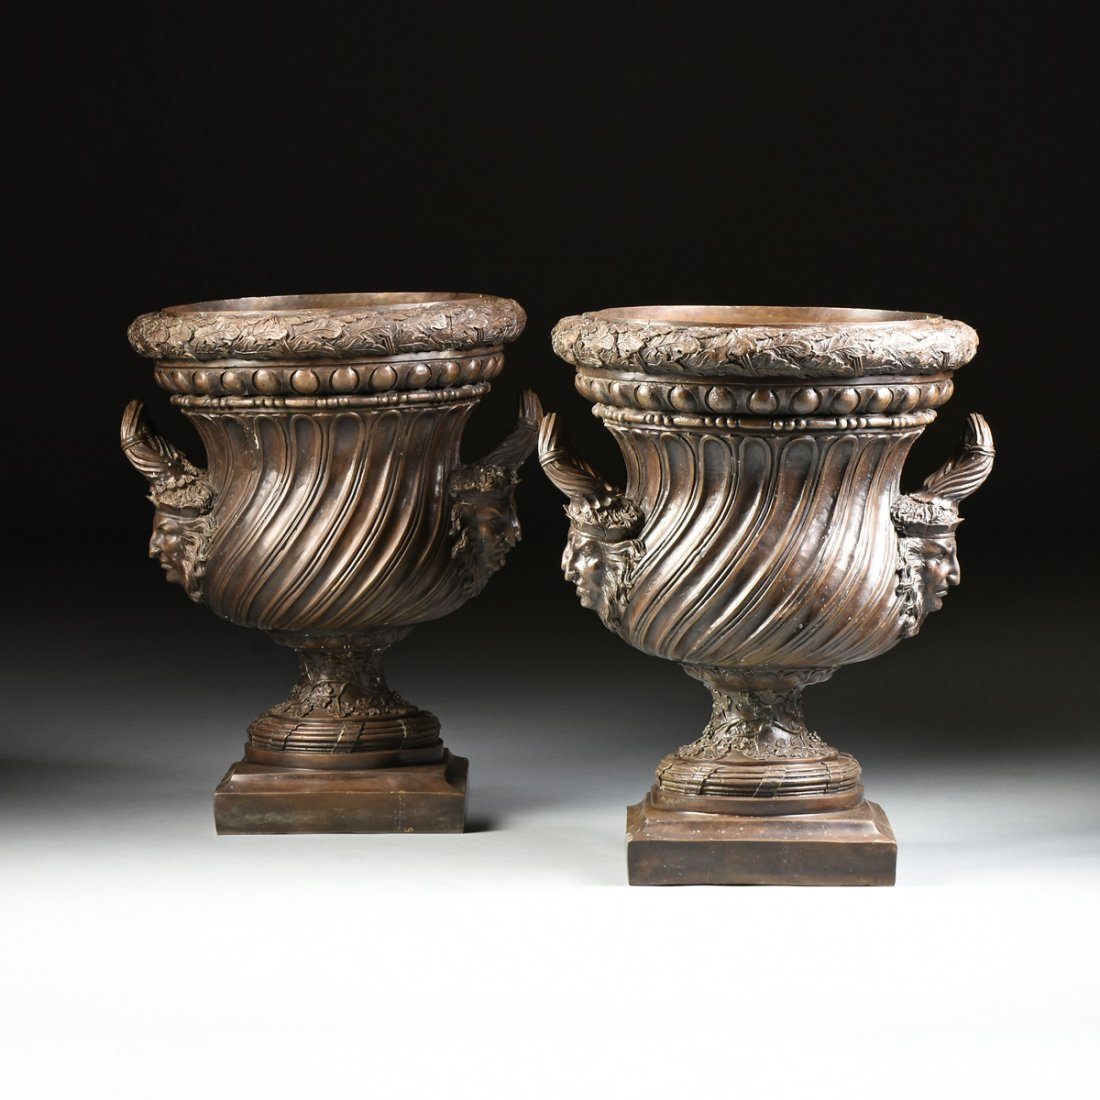 A PAIR OF LARGE NEOCLASSICAL STYLE PATINATED BRONZE